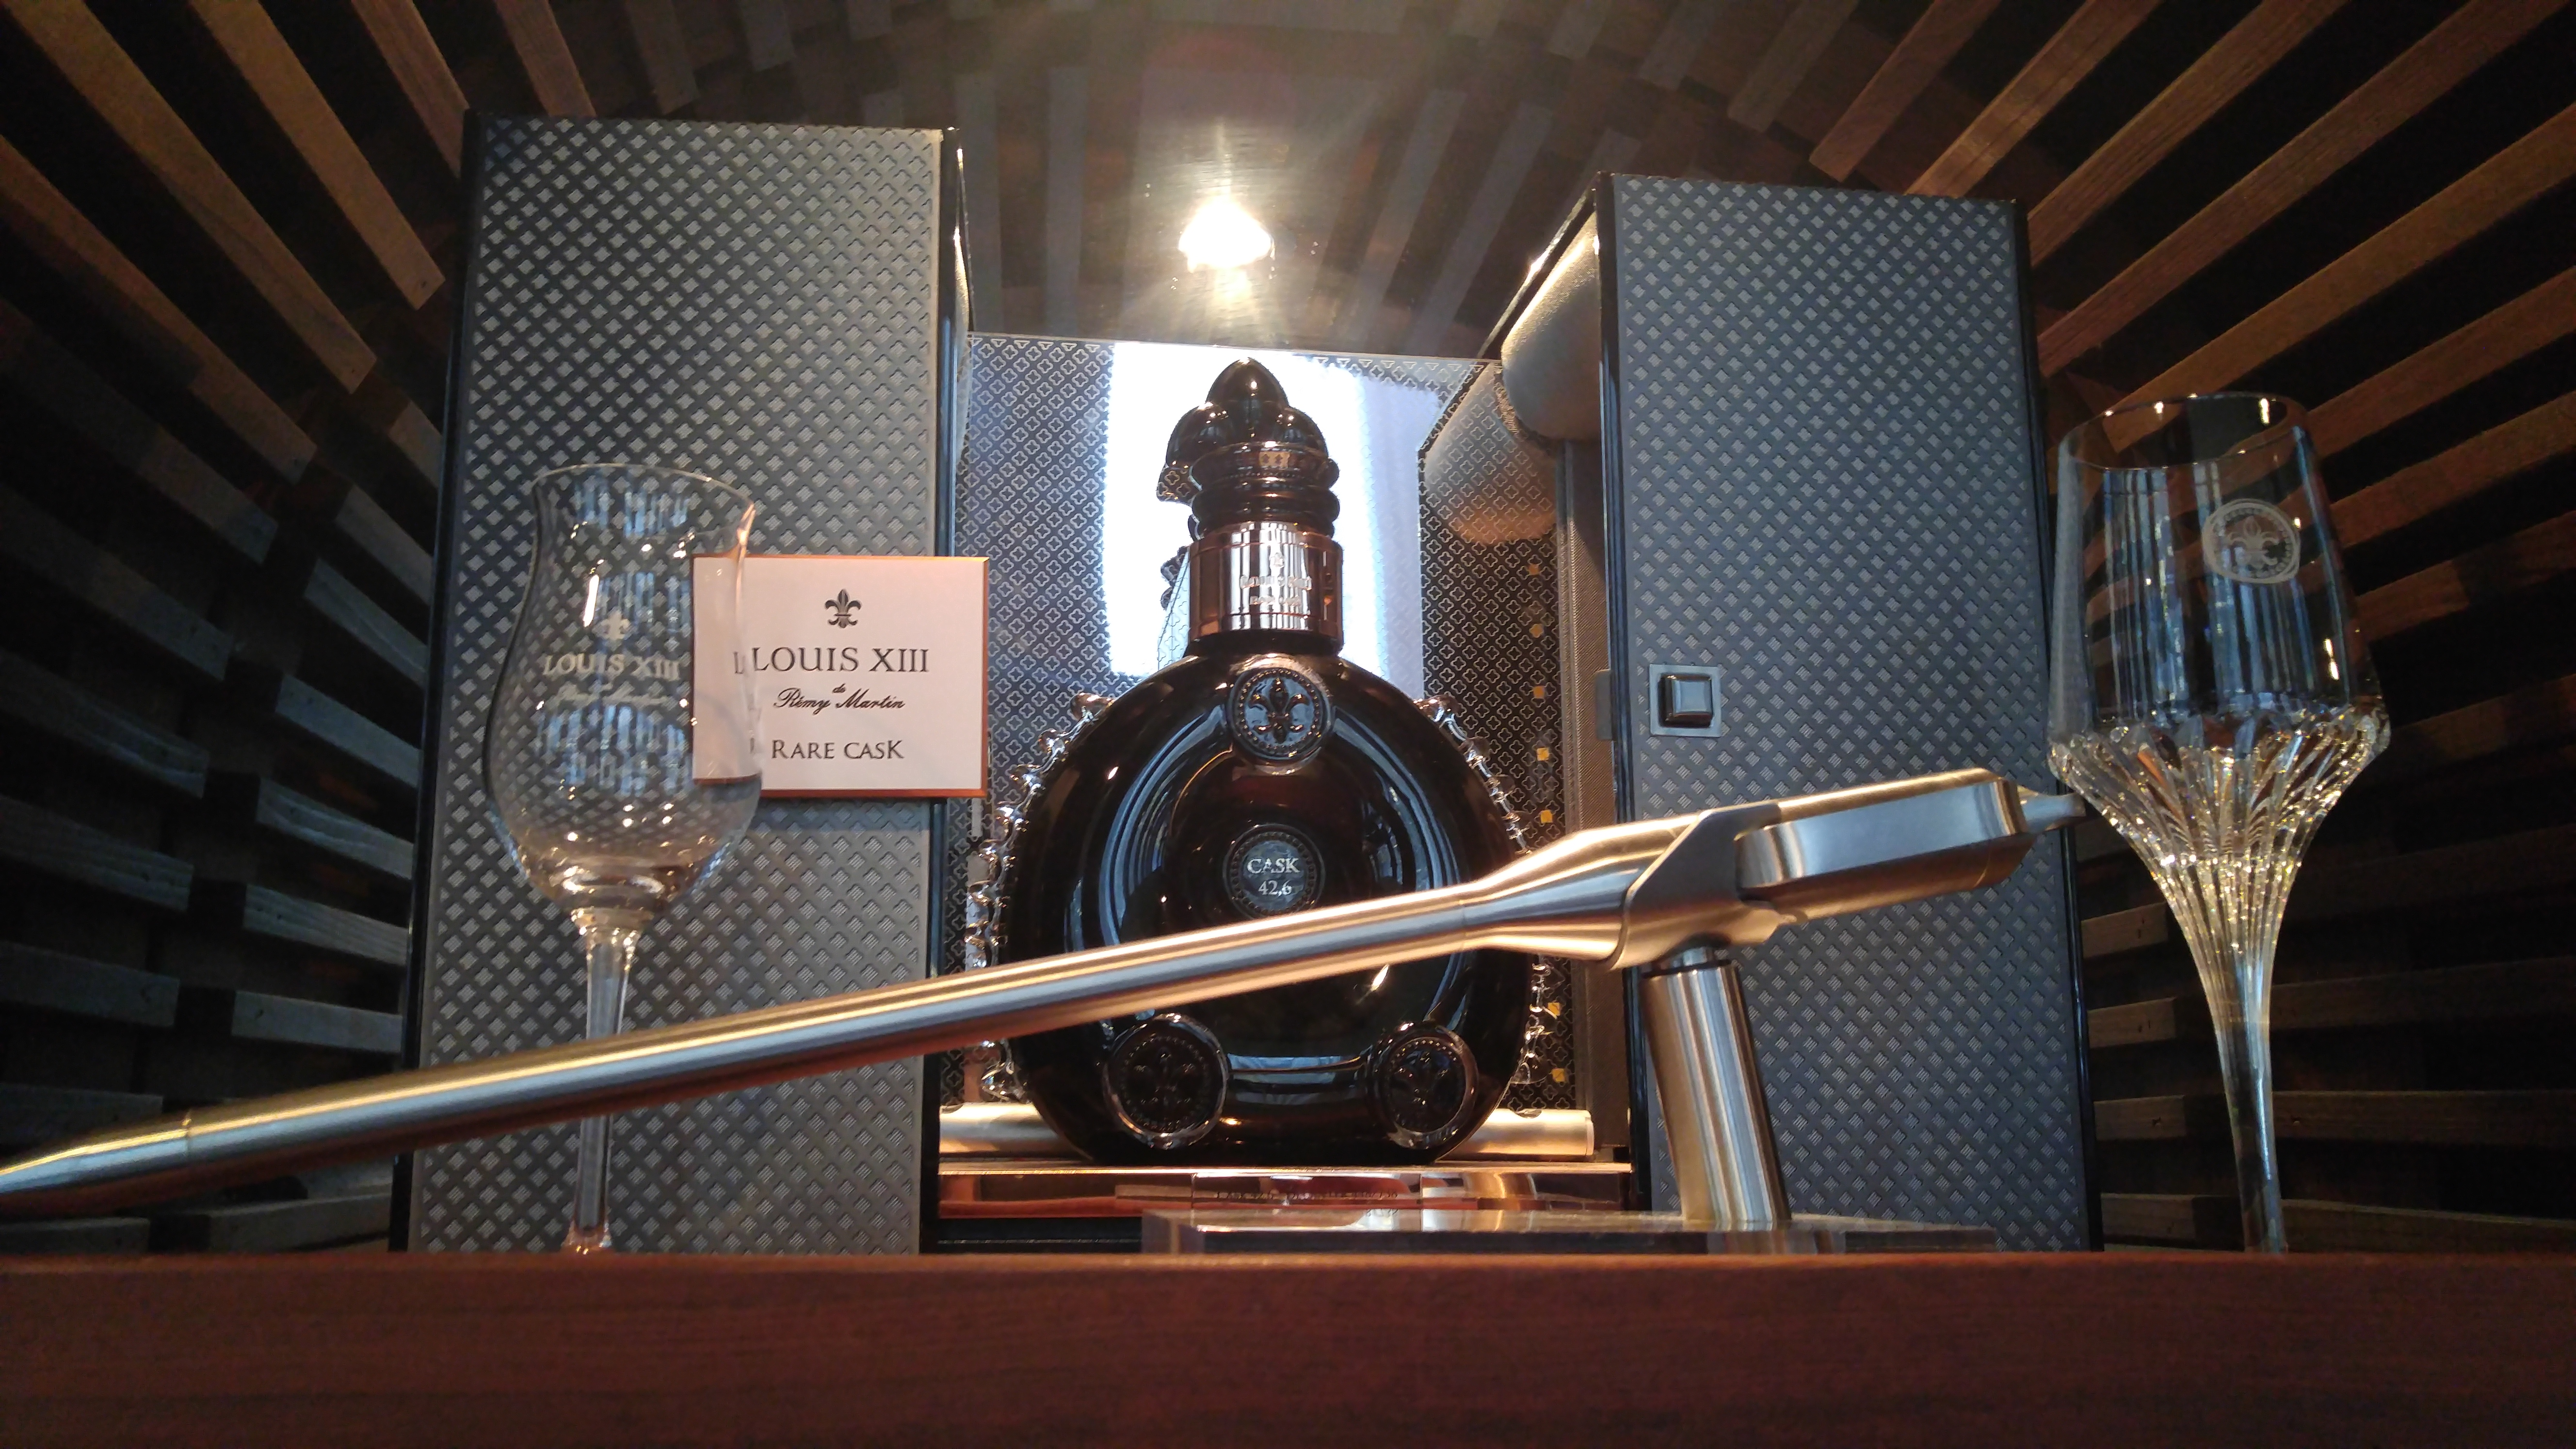 One of two bottles of Louis XIII Rare Cask in New York City, at Del Frico's Double Eagle Steakhouse